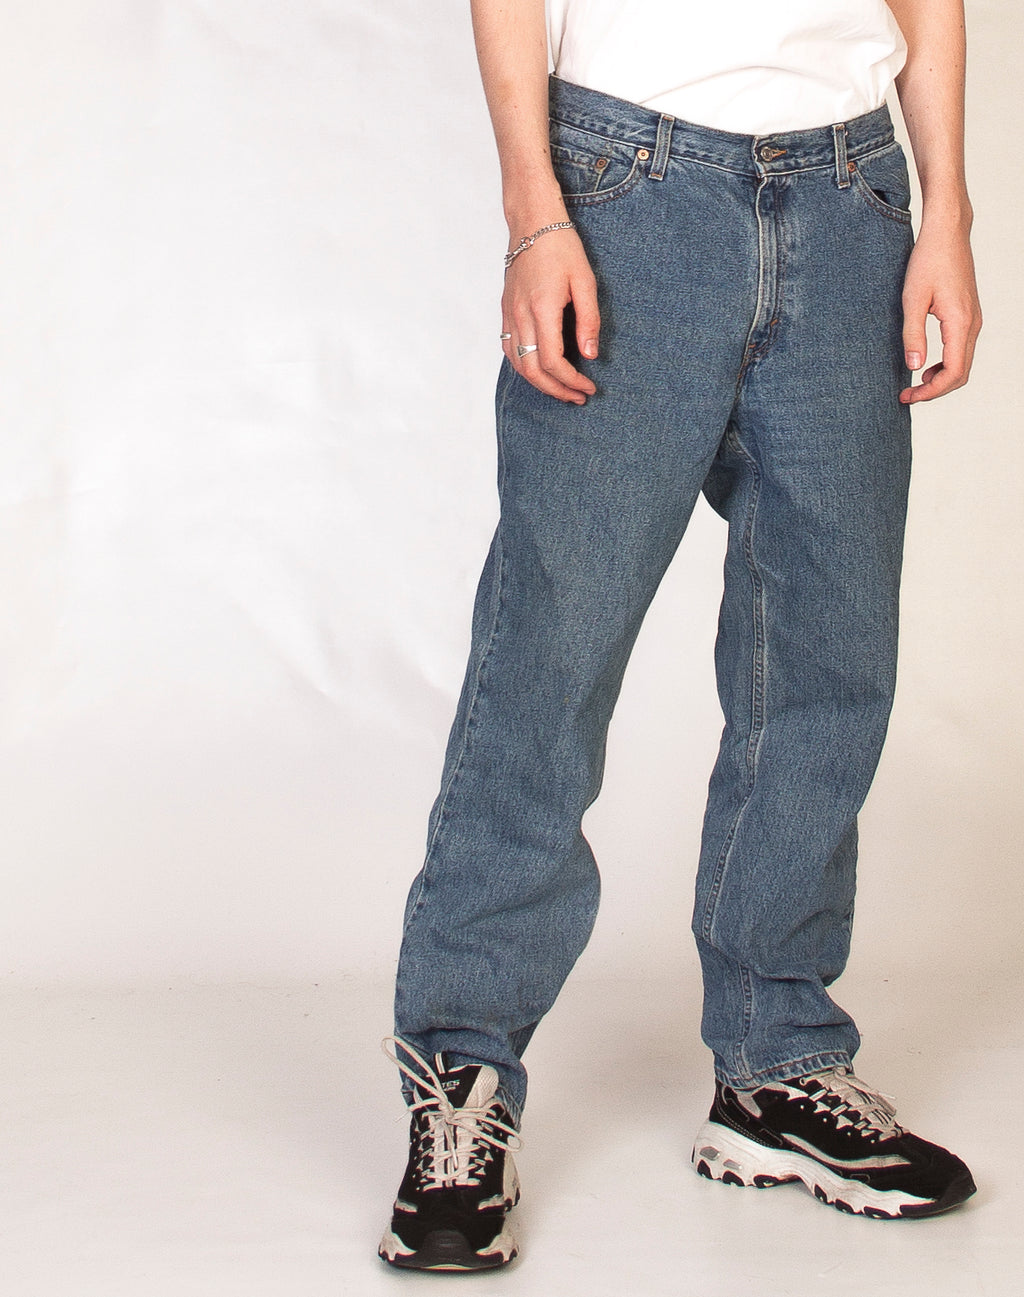 LEVI'S 512 RELAXED FIT JEANS